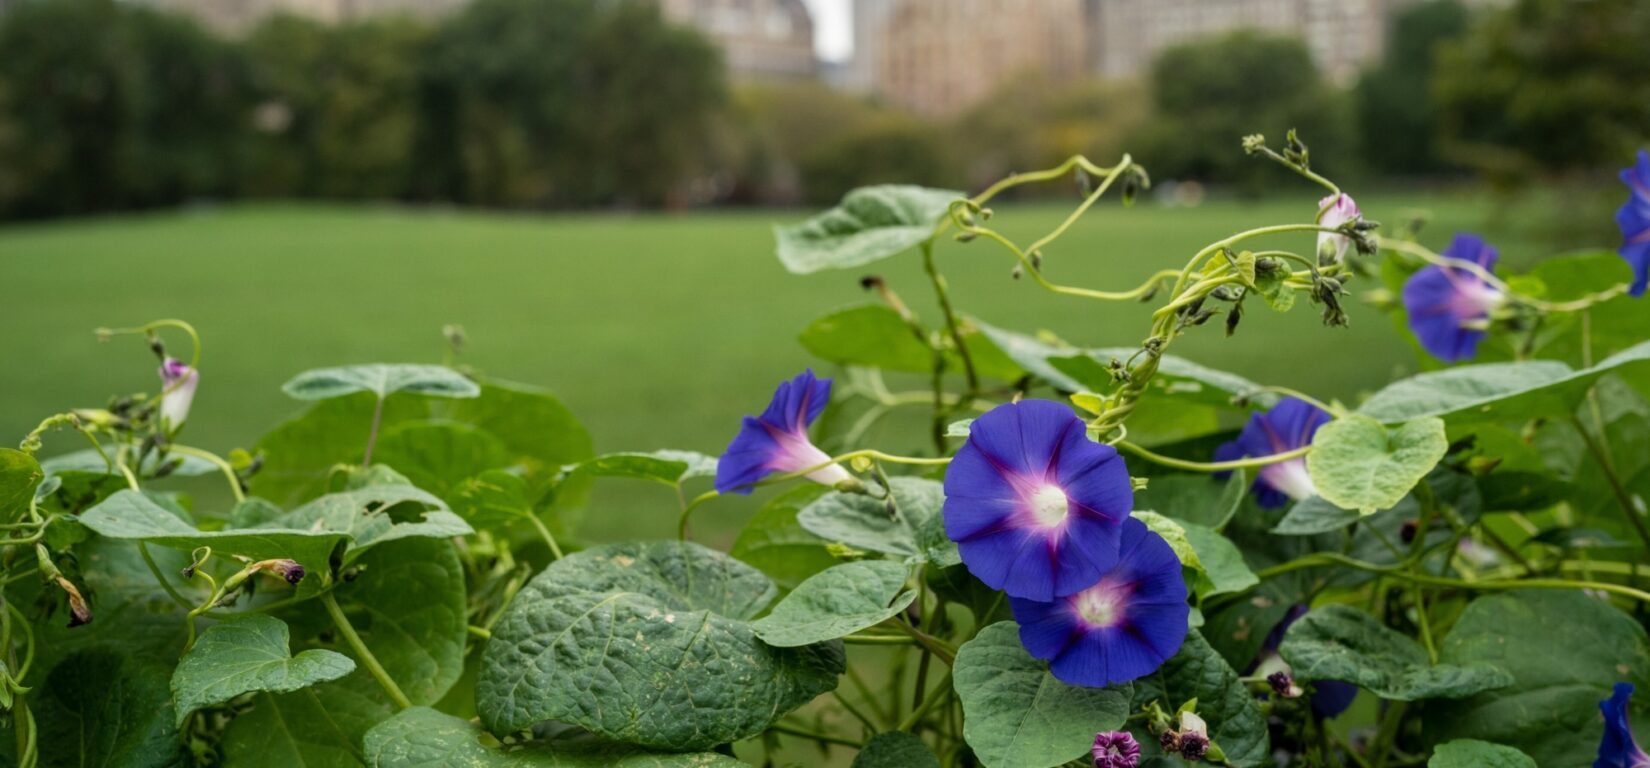 Close-up on flowers with the Sheep Meadow and skyline in the background